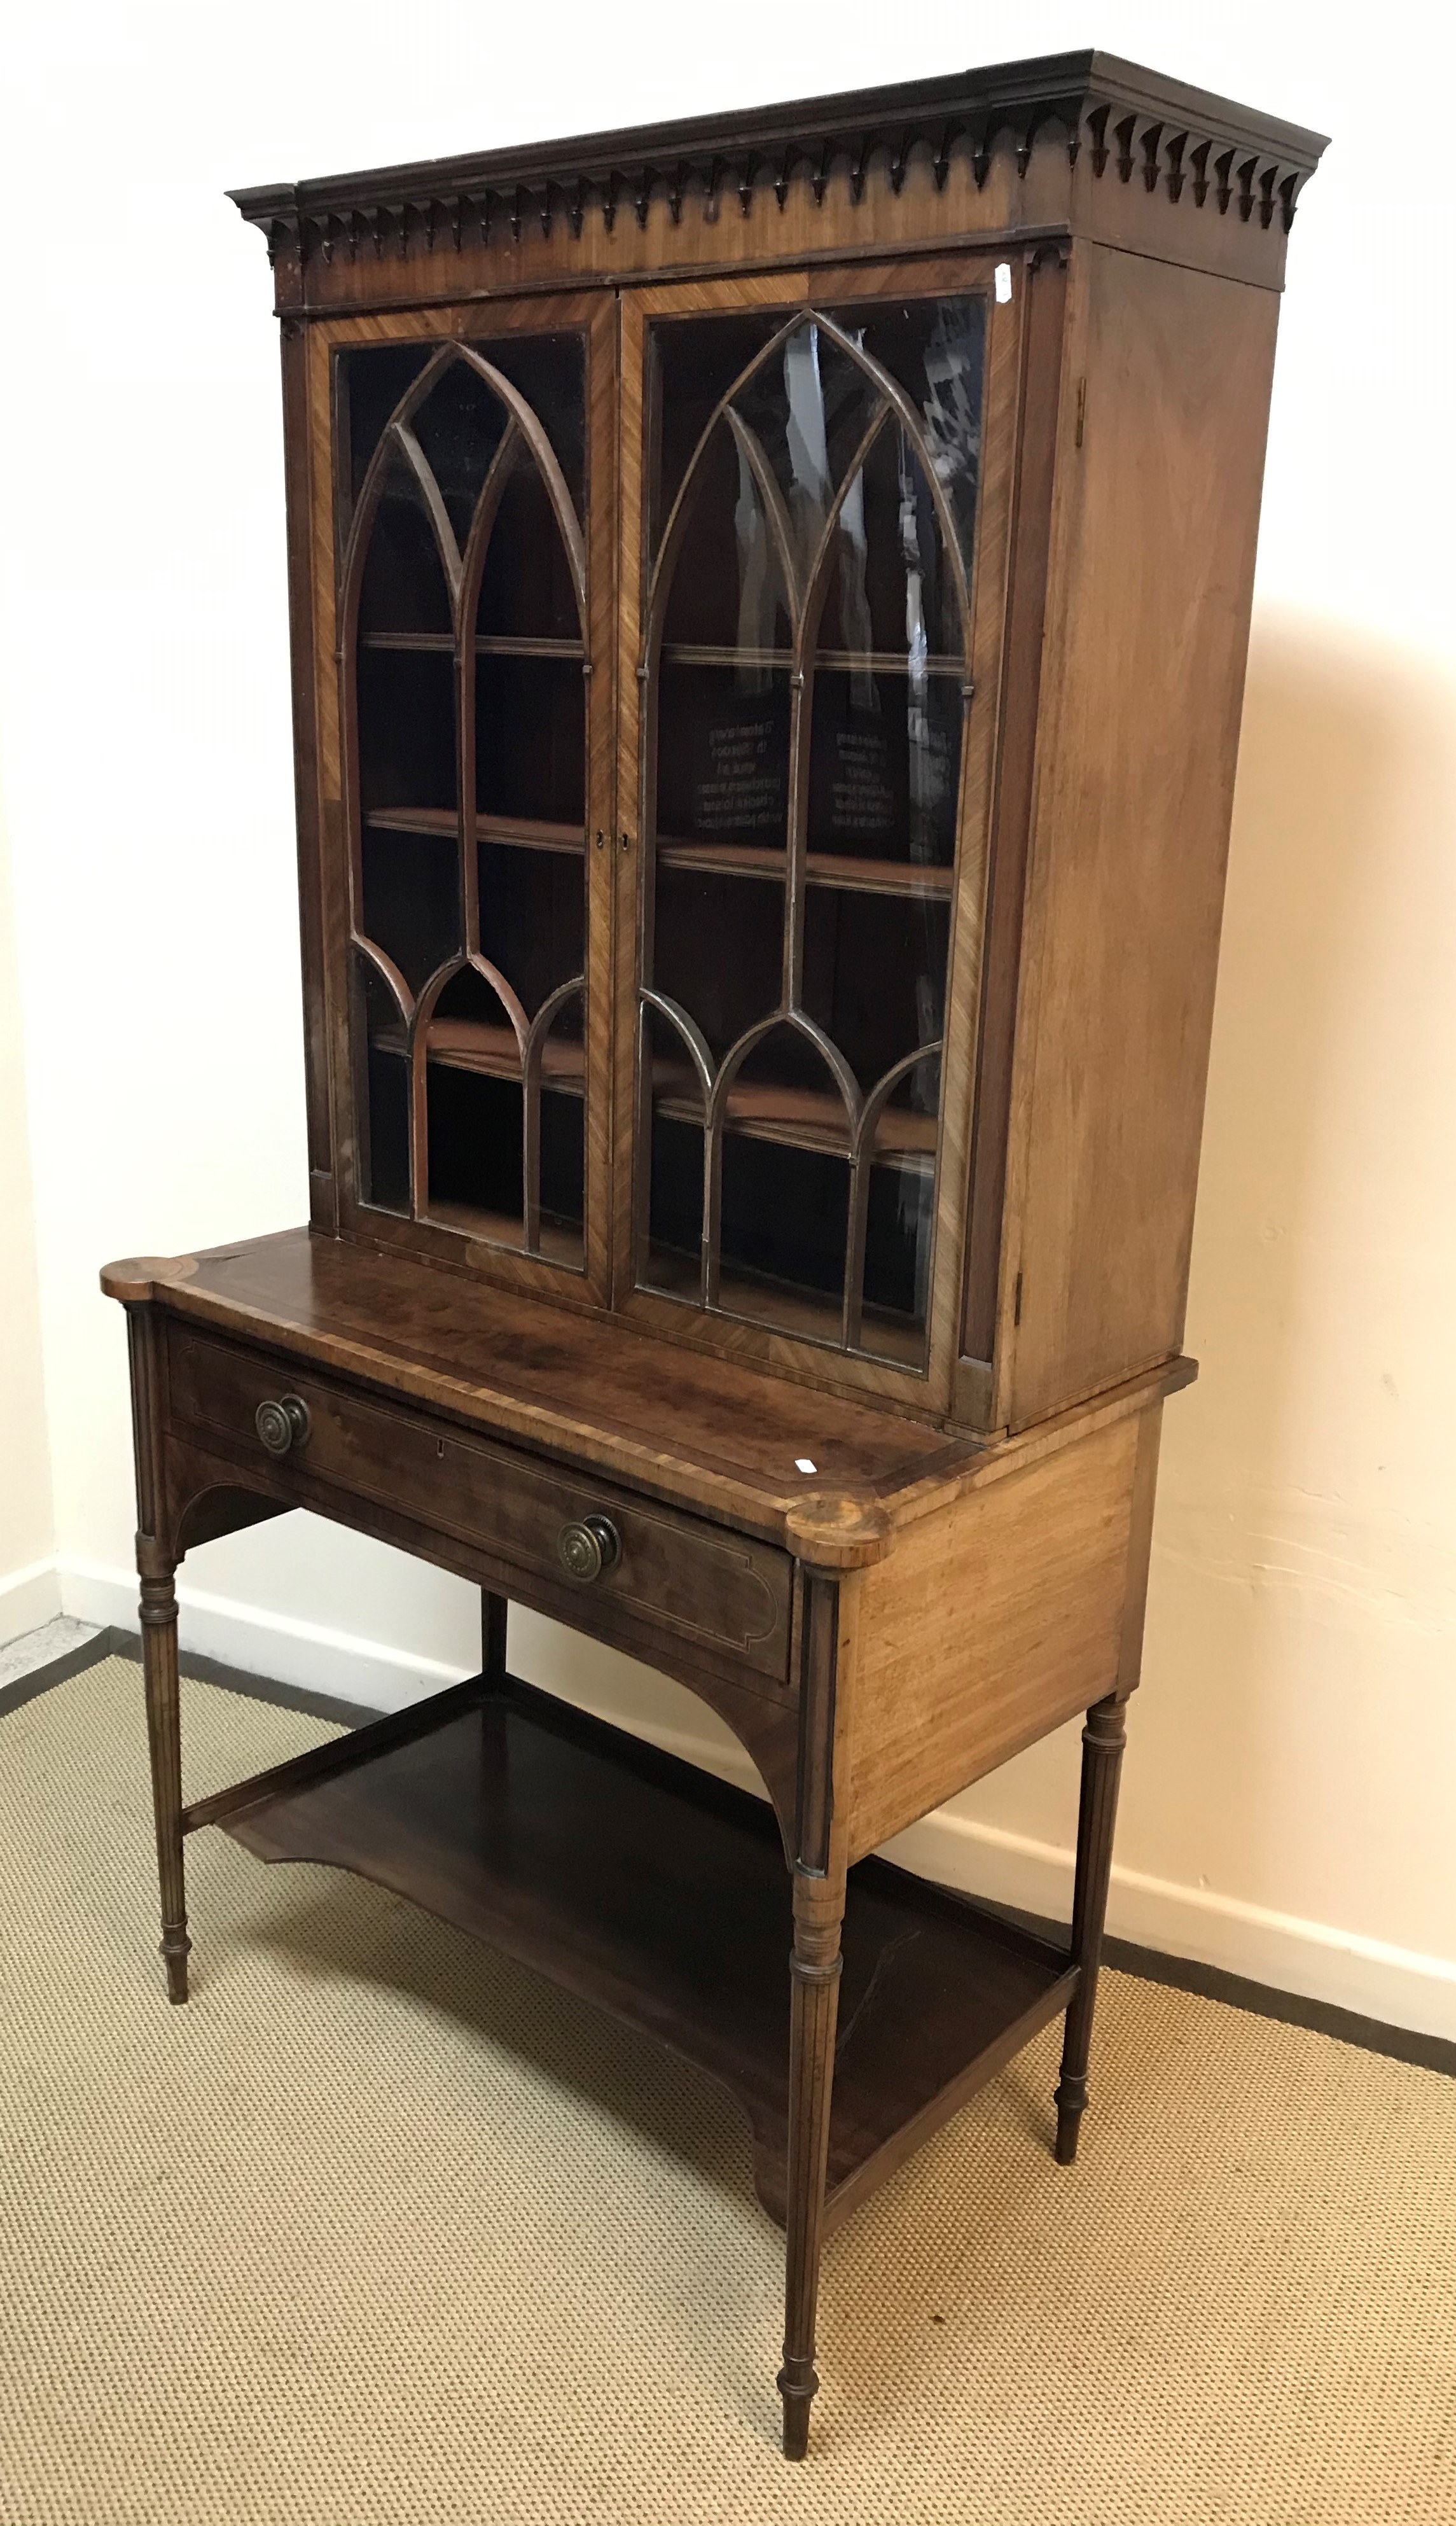 A 19th Century mahogany and inlaid secretaire bookcase, the upper section with decorative cornice